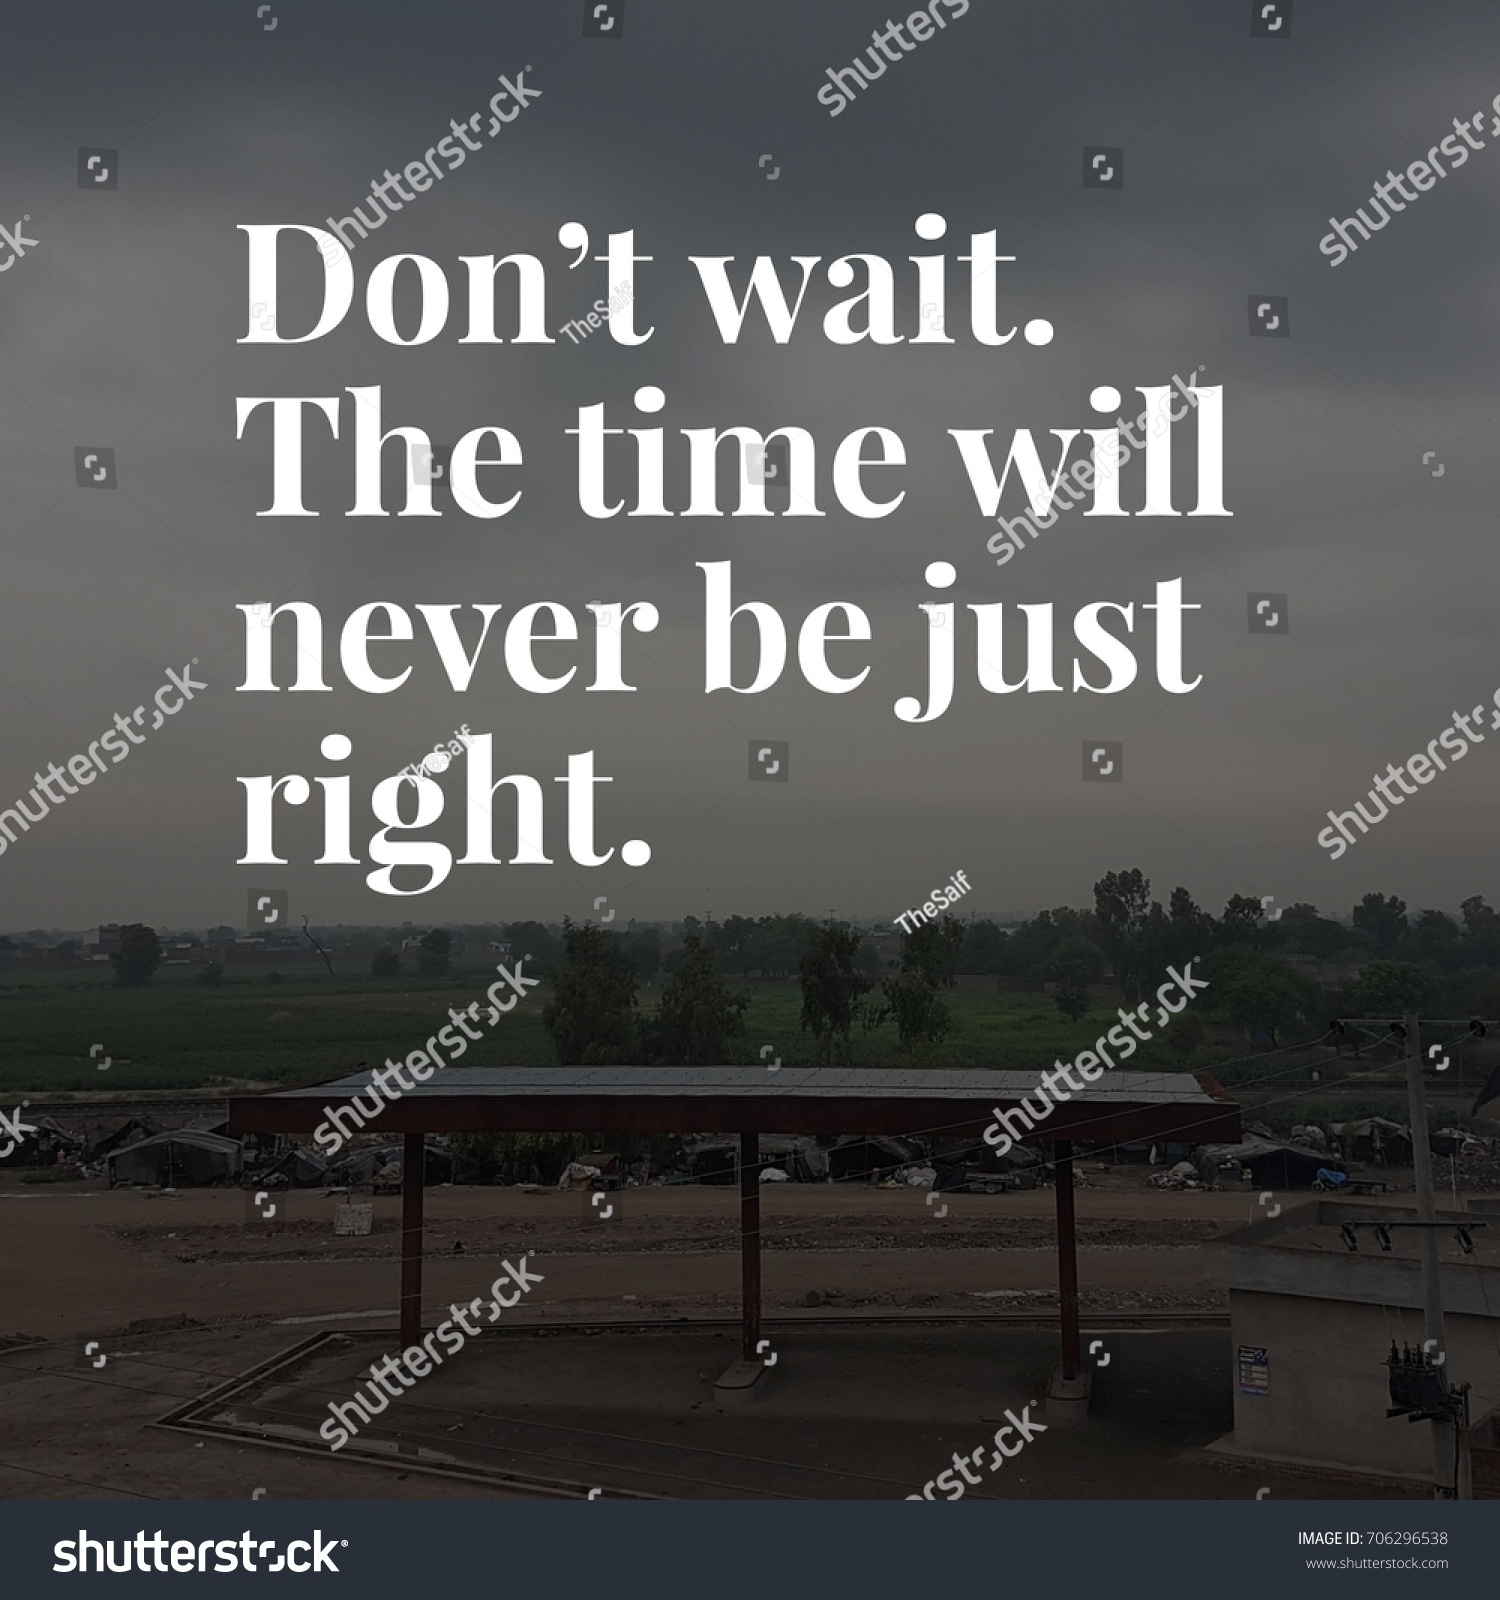 Uplifting Motivational Quotes Quote Best Inspirational Motivational Quotes Sayings Stock Photo